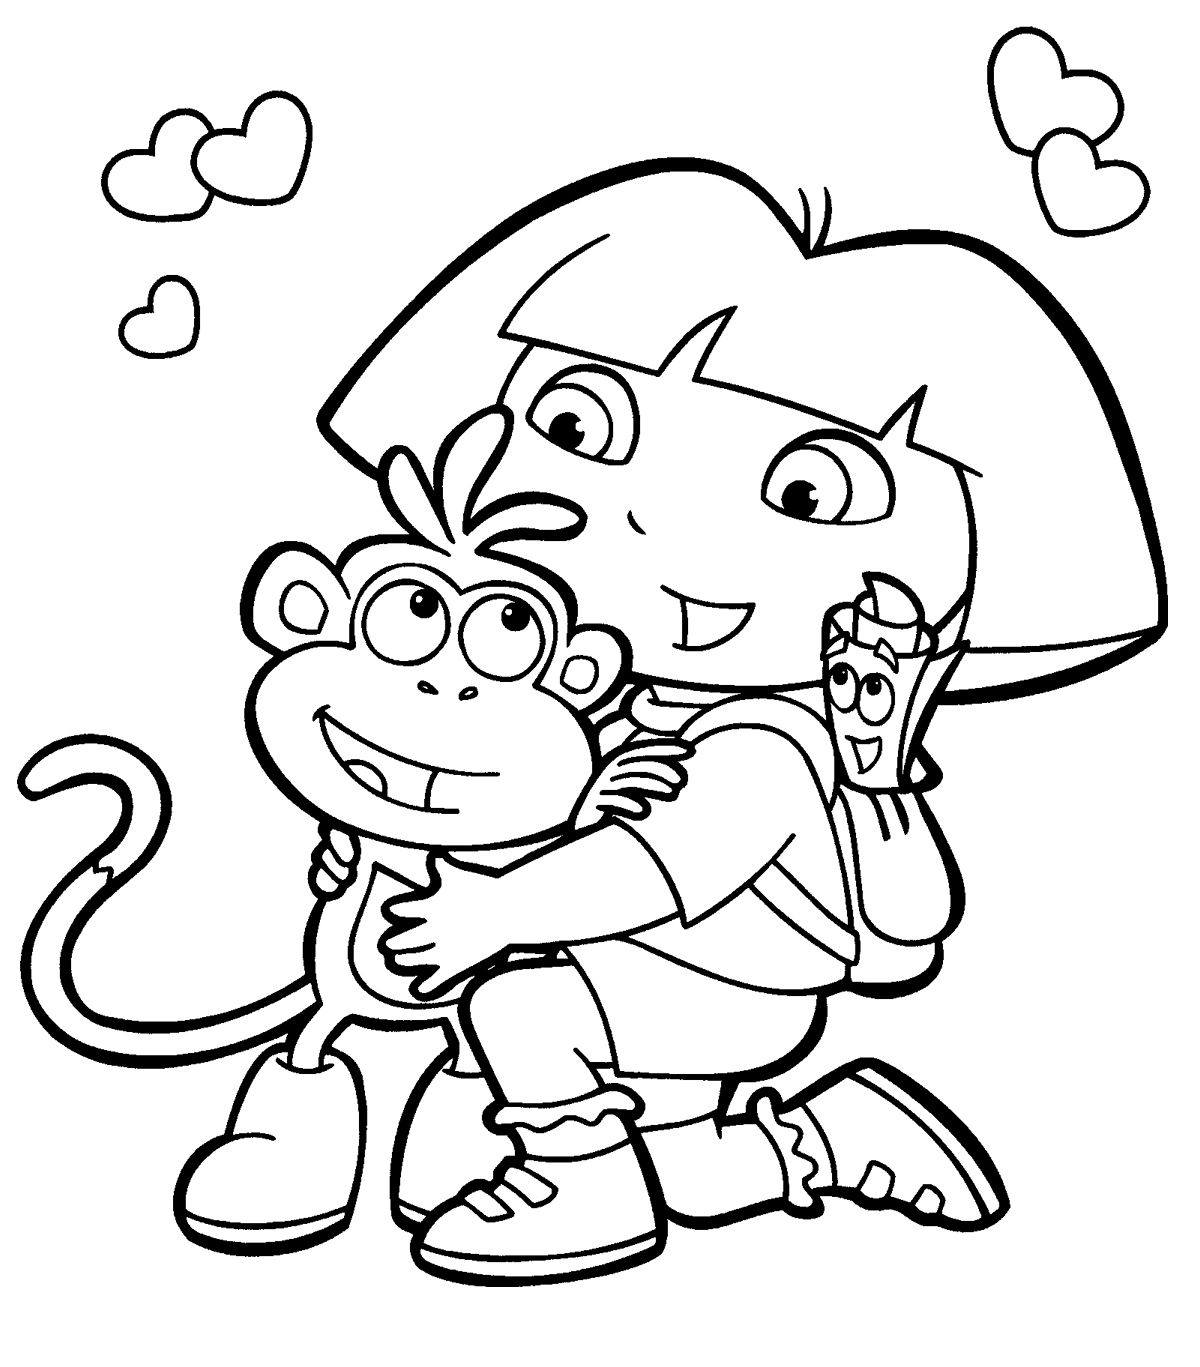 Paw patrol coloring pages valentines - Nice Dora The Explorer Coloring Page